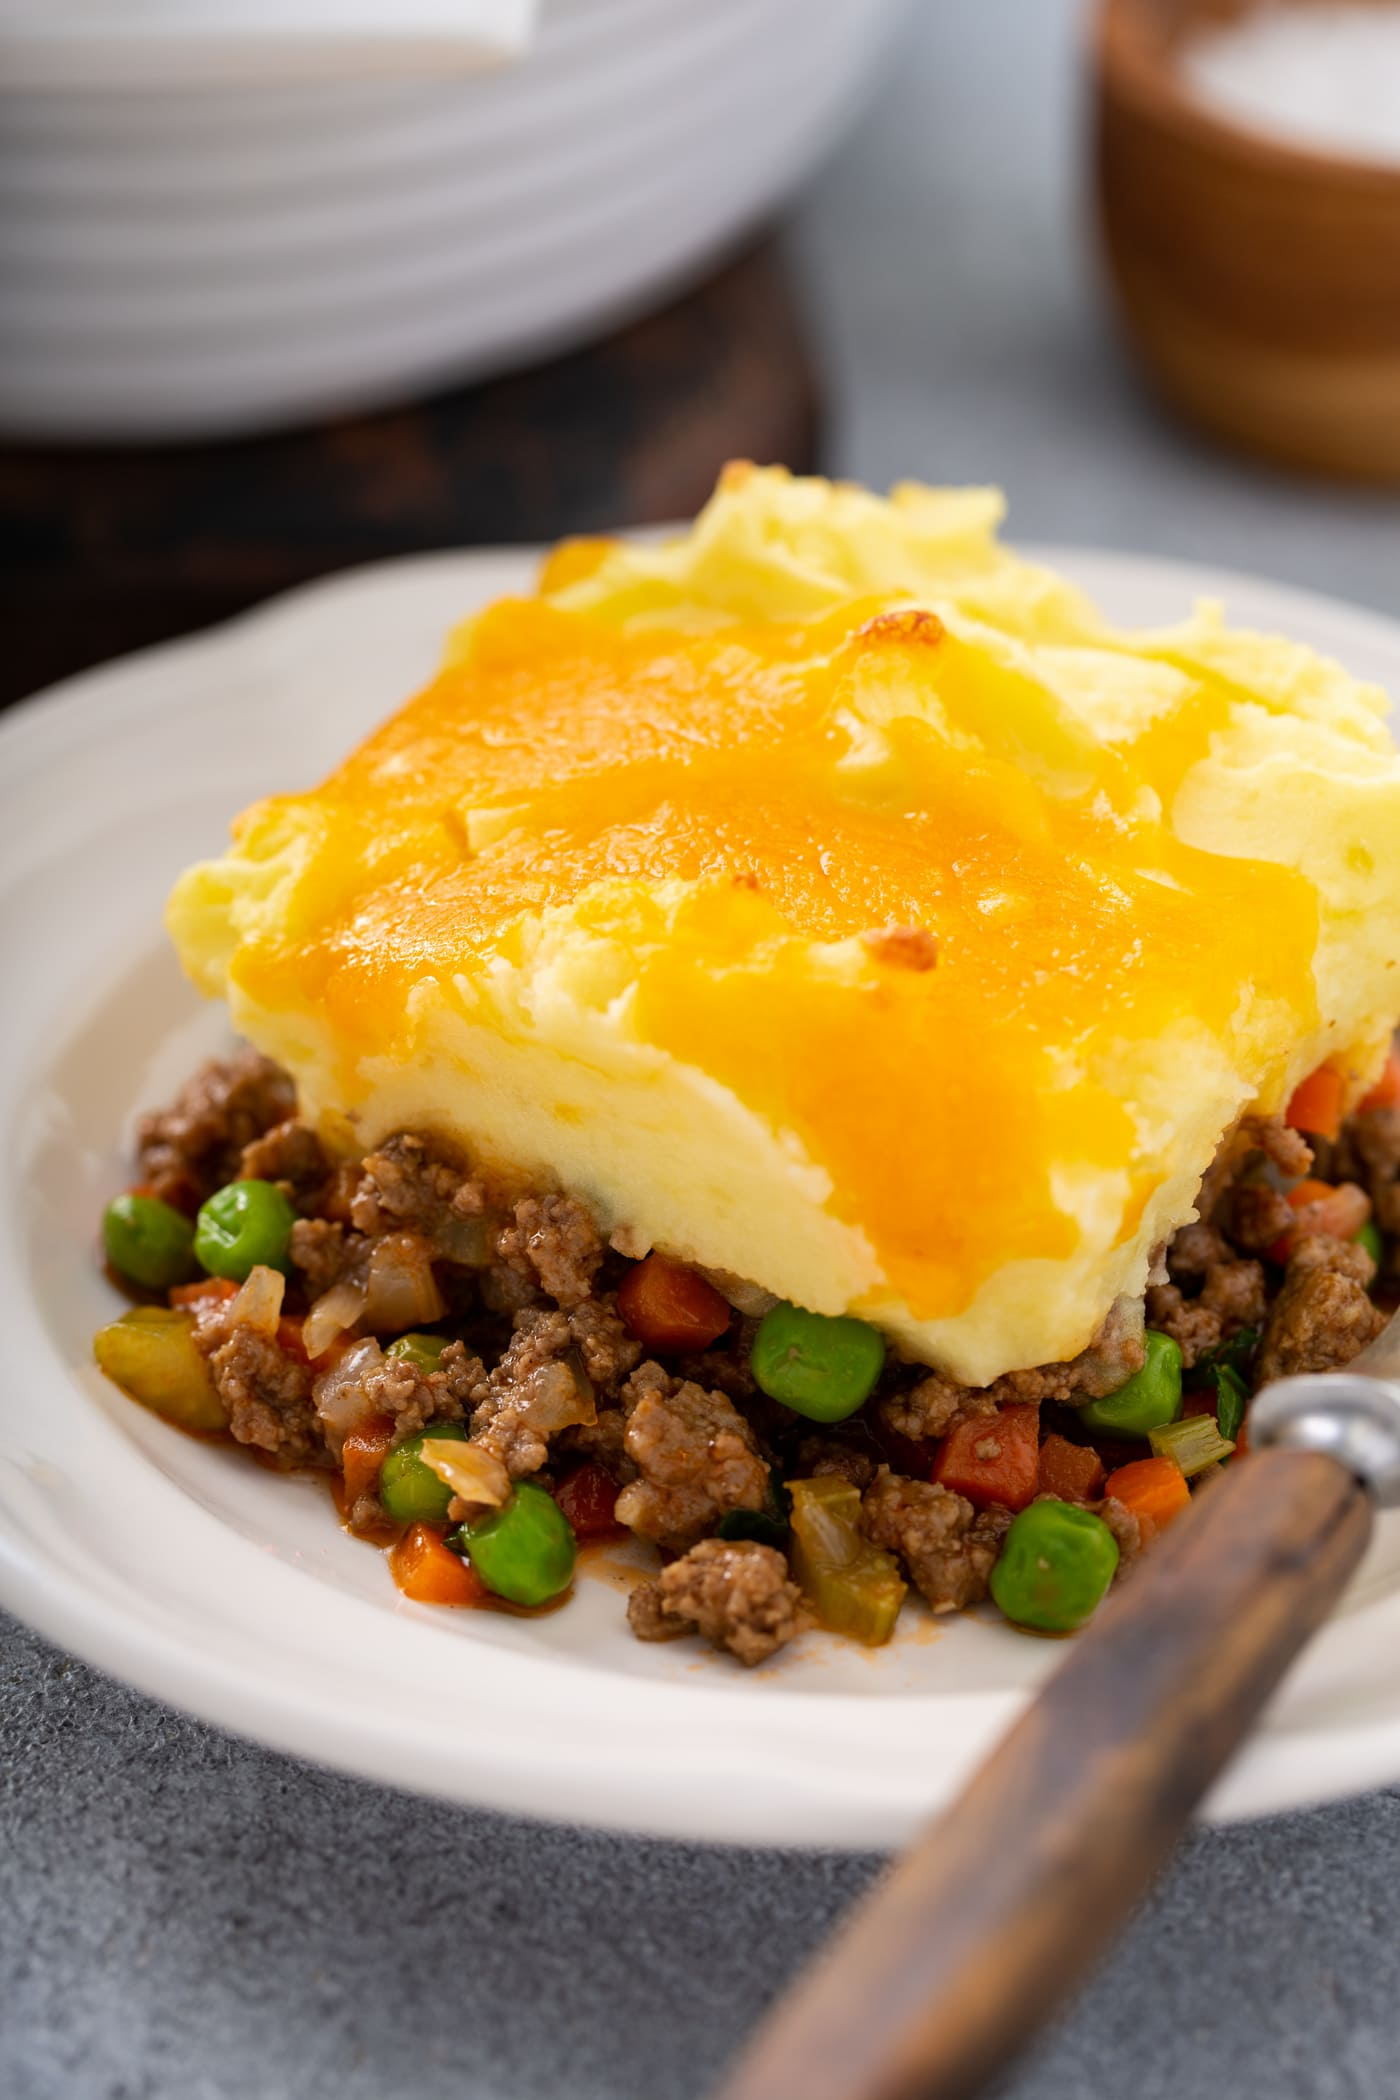 A serving of shepherd's pie on a white plate. there is a fork resting next to it on the plate.